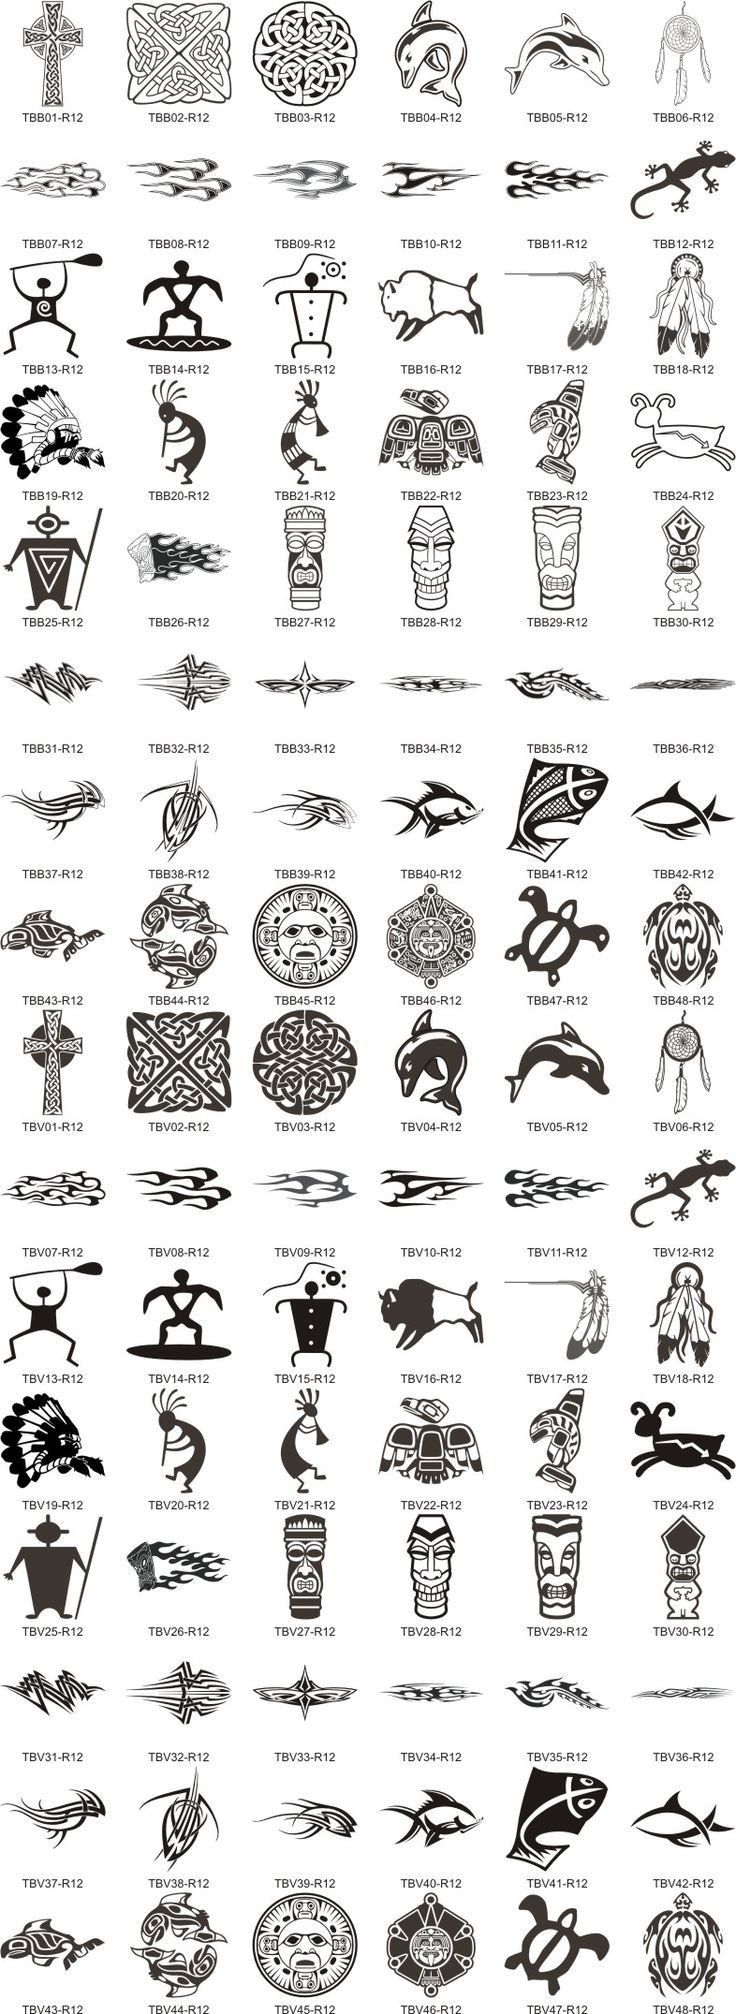 Symbols and Their Meanings | Fonts and Symbols: